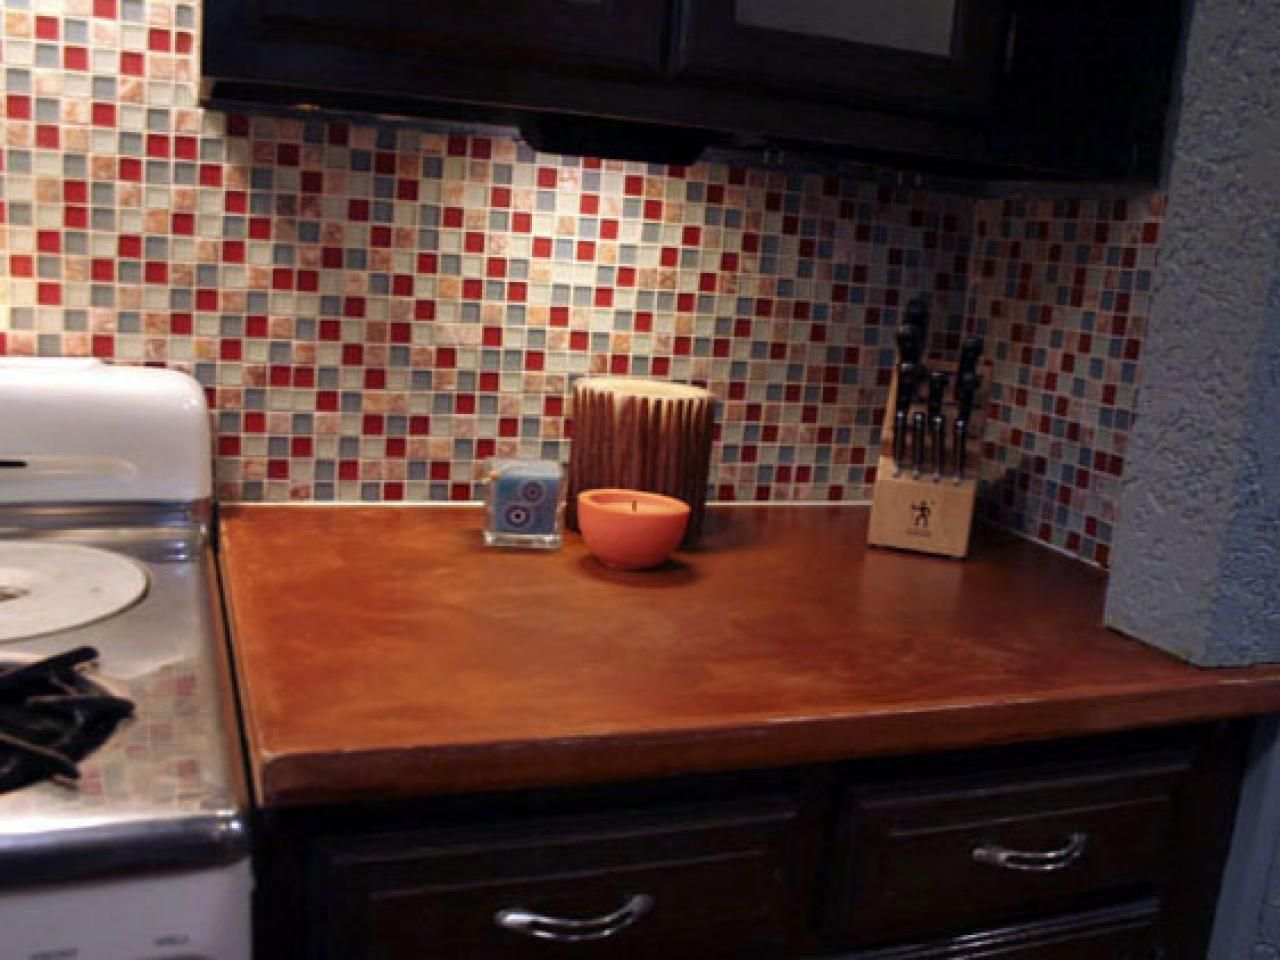 Installing A Tile Backsplash In Your Kitchen From Installing Glass